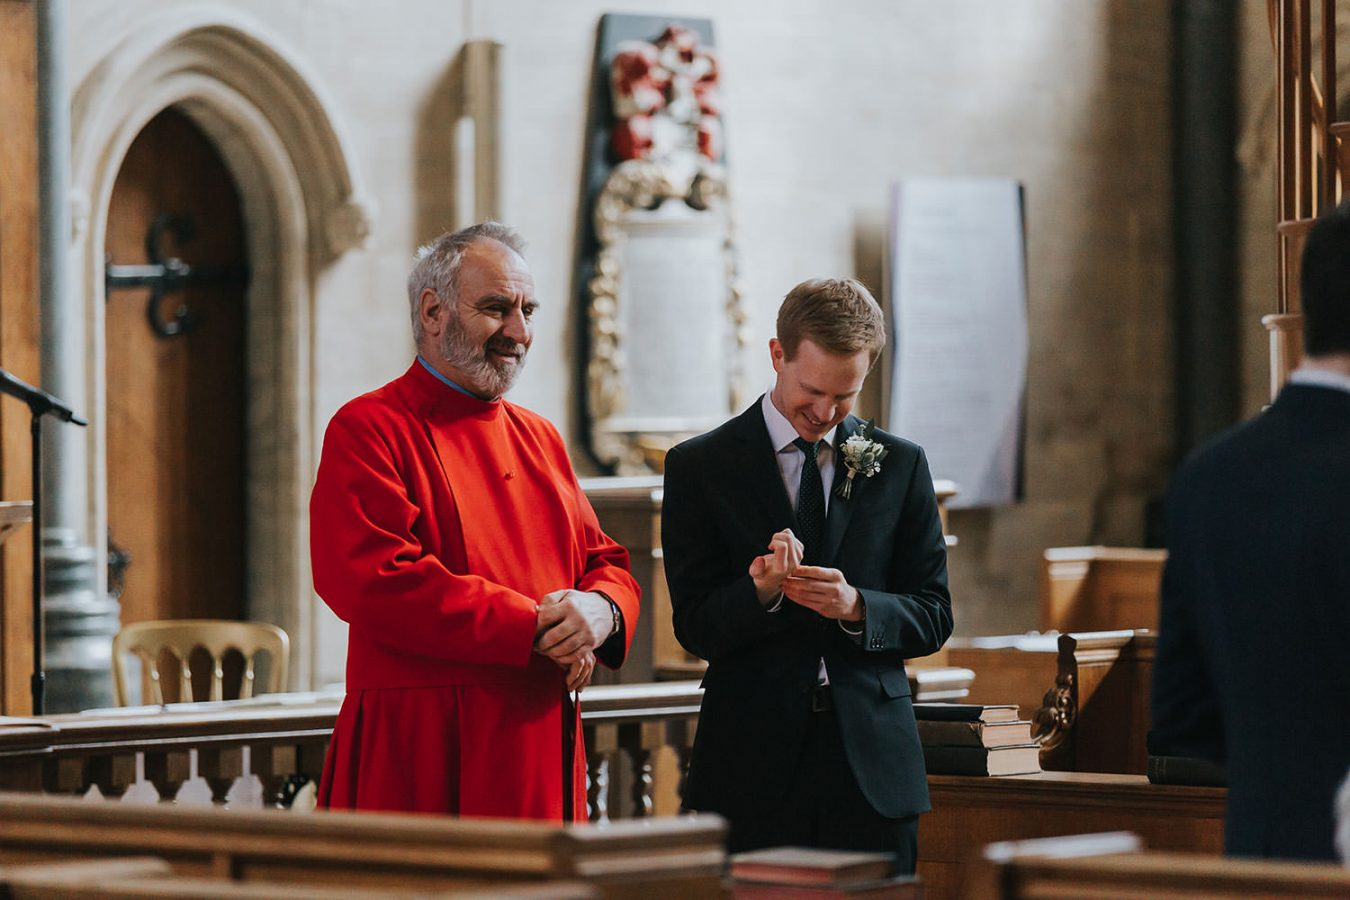 temple-church-london-wedding12